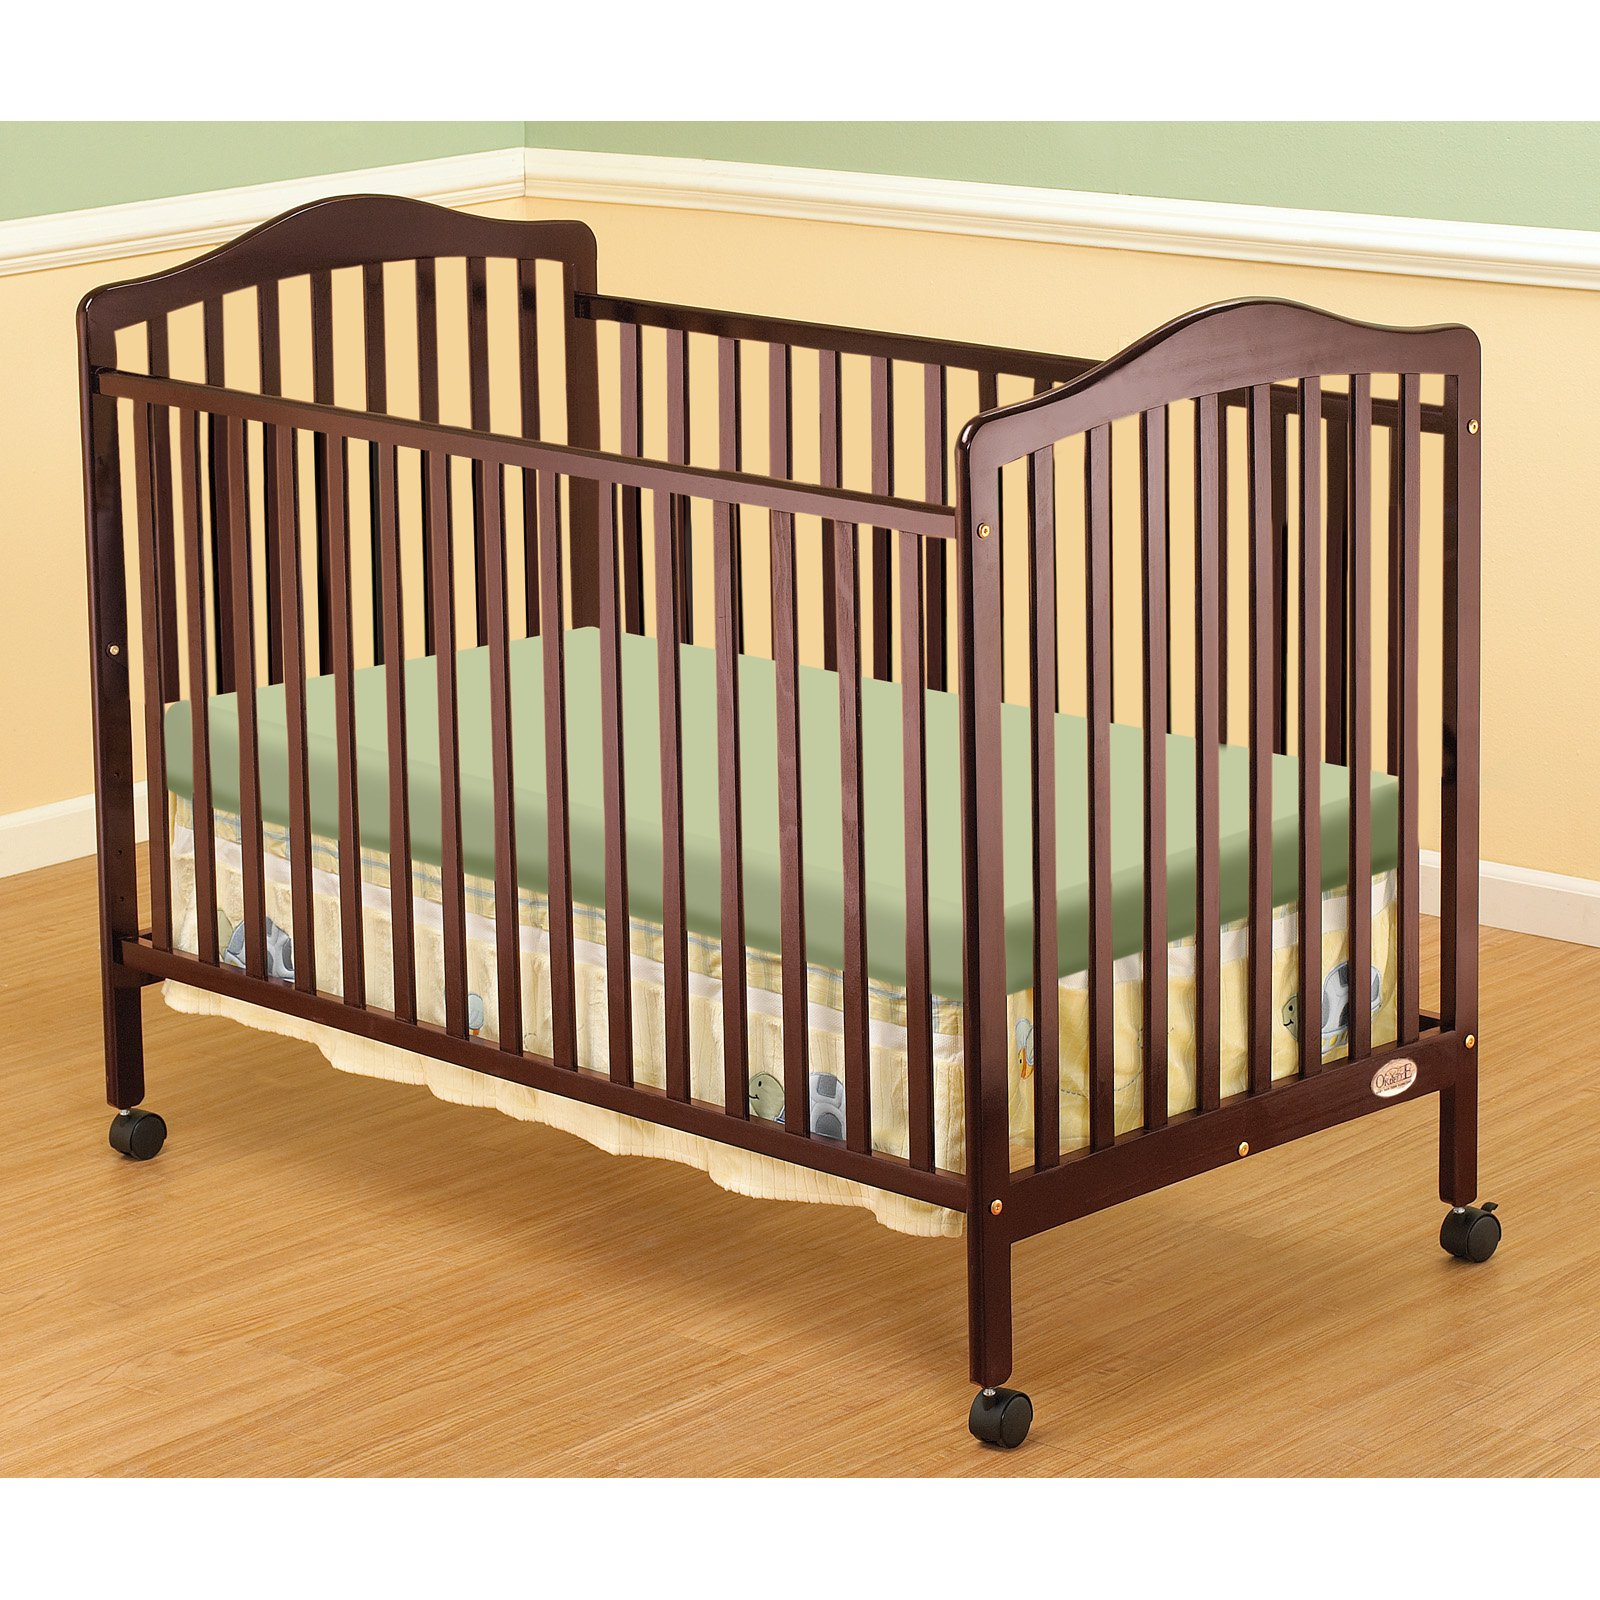 Orbelle Jenny 3-in-1 Convertible Crib